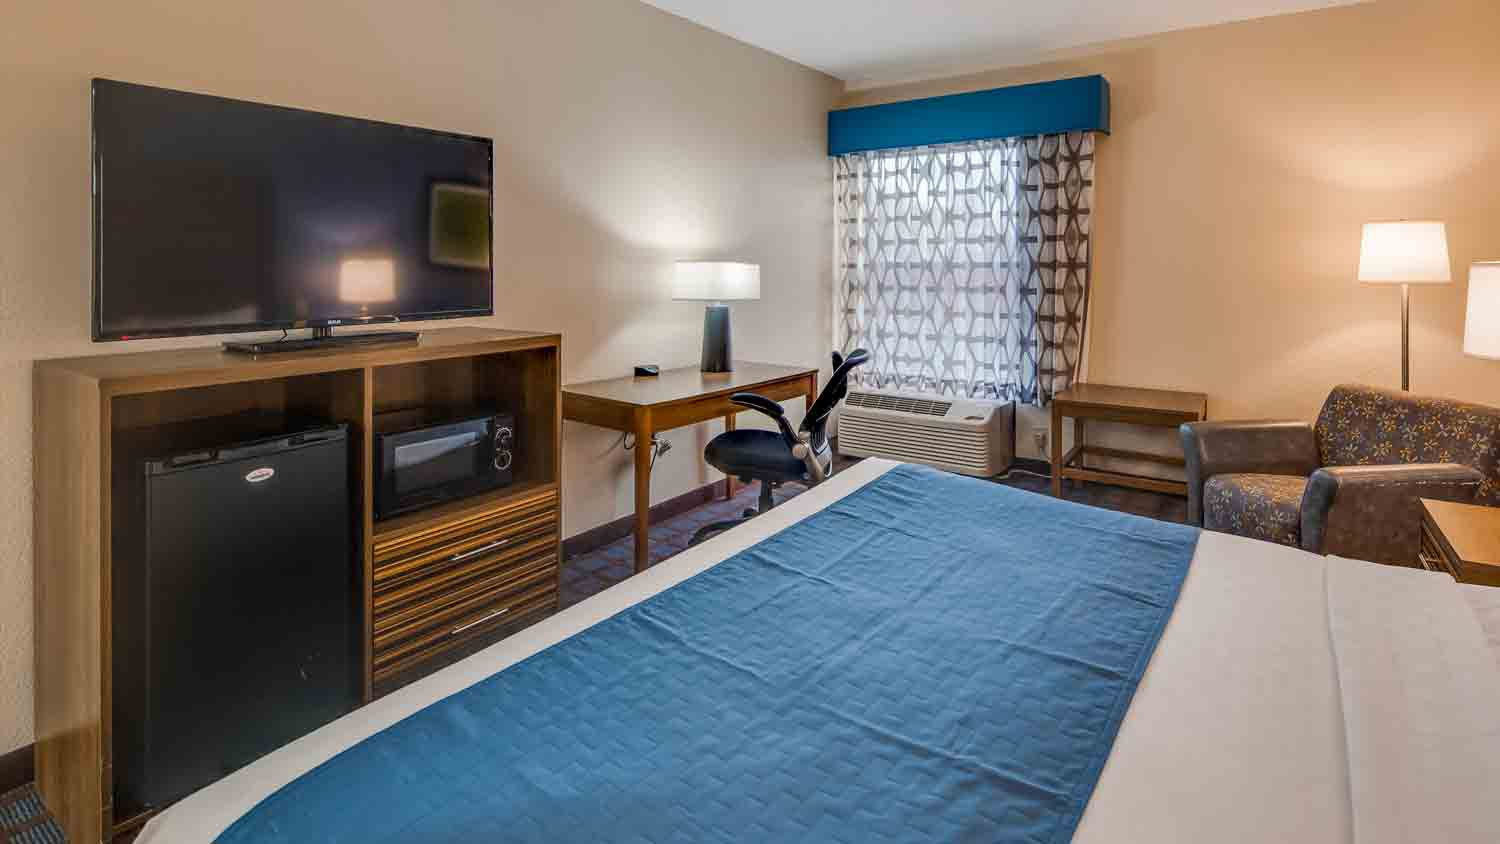 Best Western - Fishers-Indianapolis 4